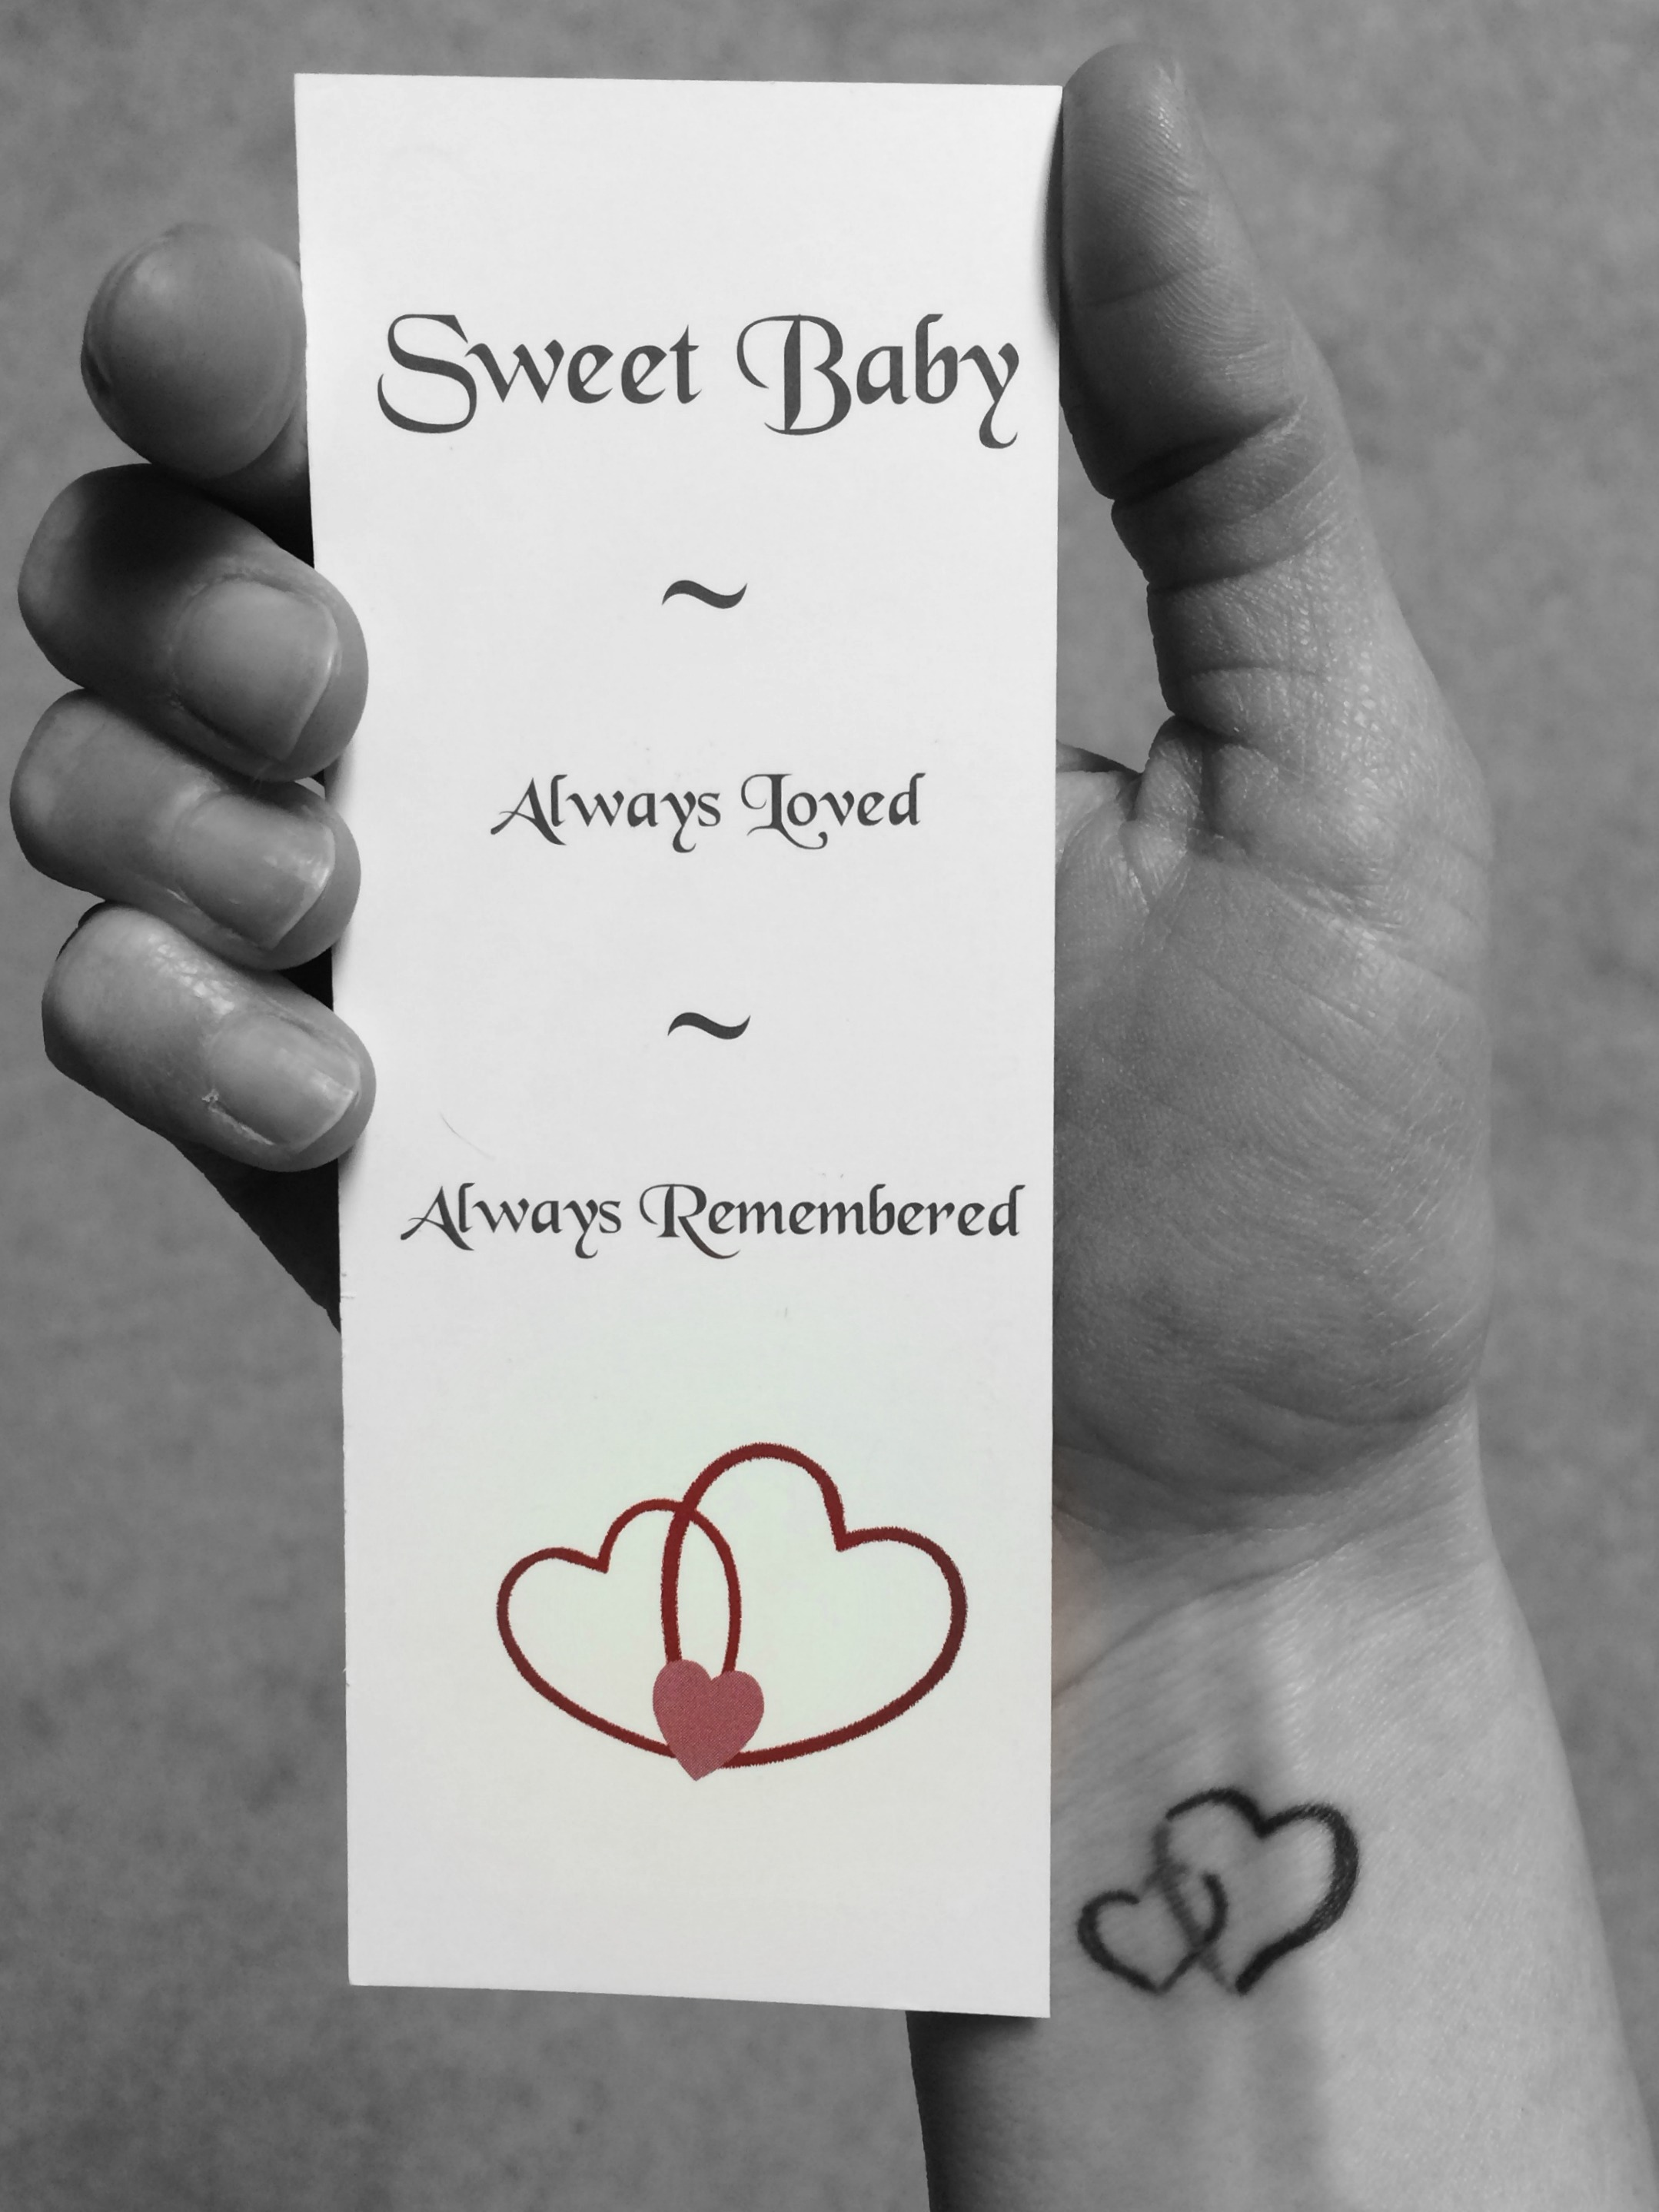 Sweet Baby - Coping with Miscarriage